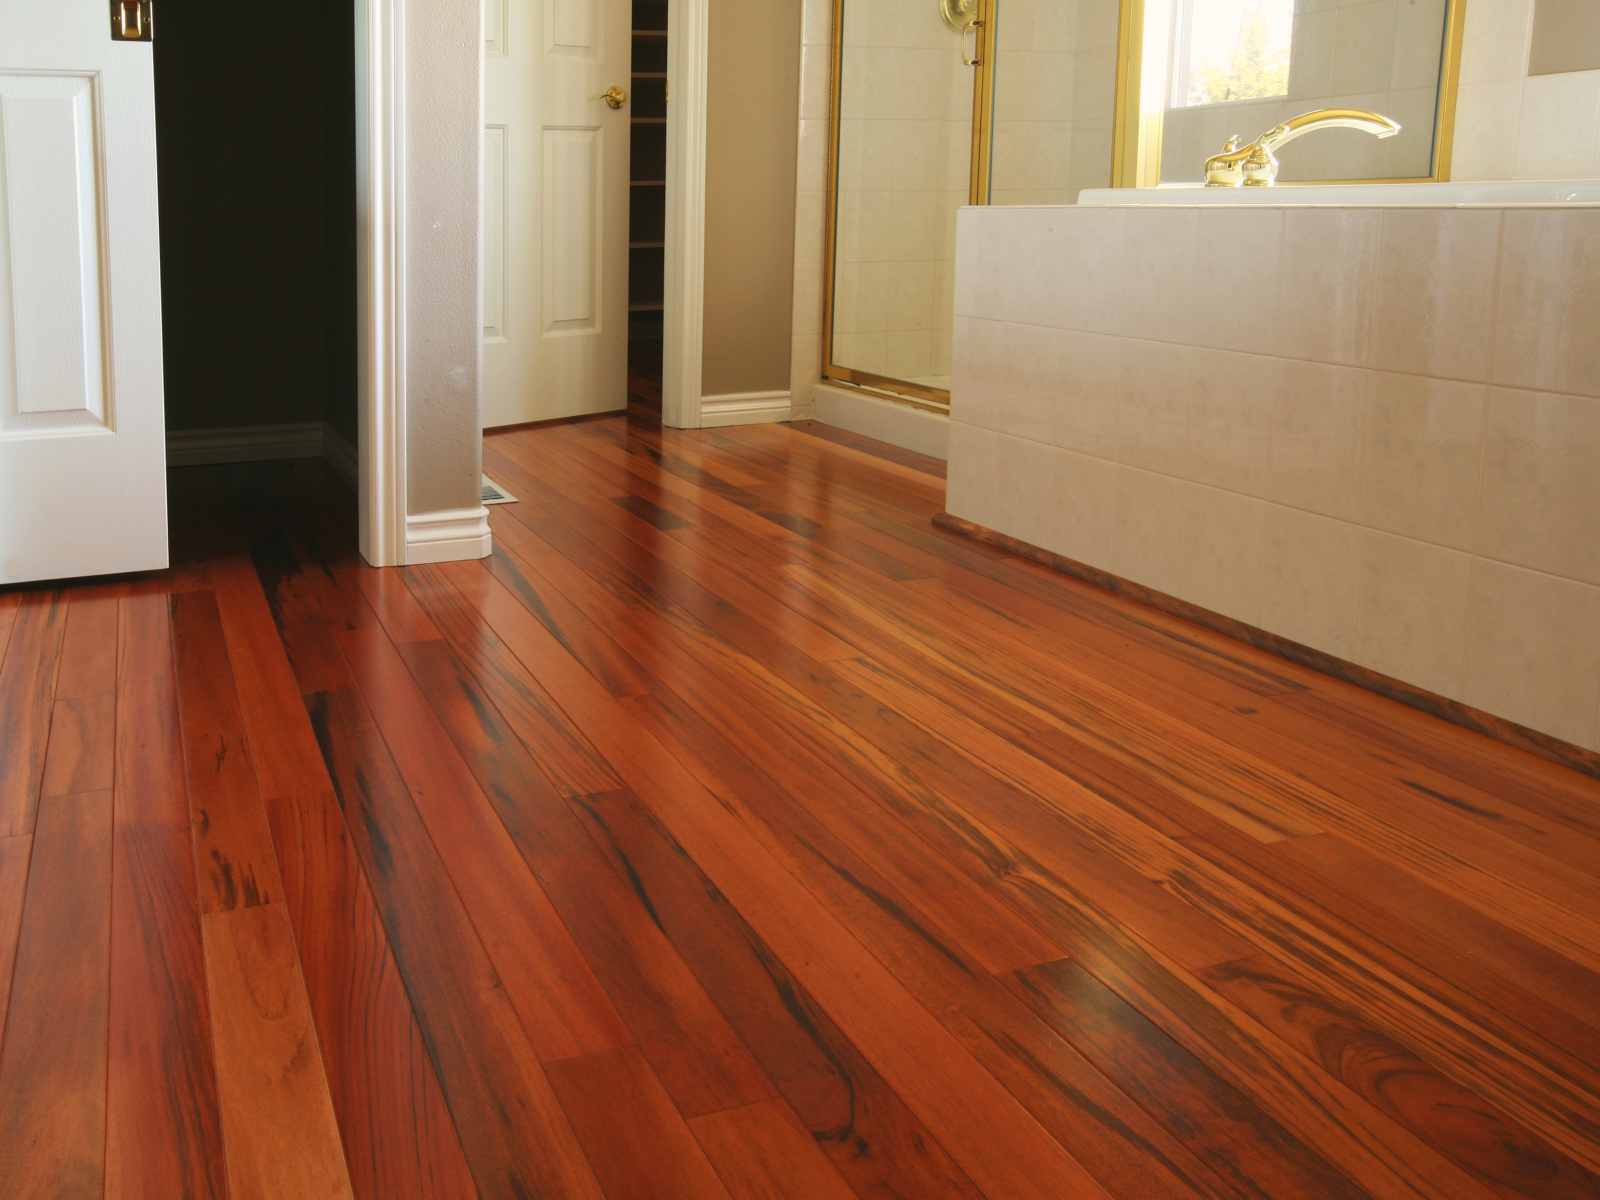 Bamboo flooring eco friendly flooring for your home for Hardwood floors or carpet